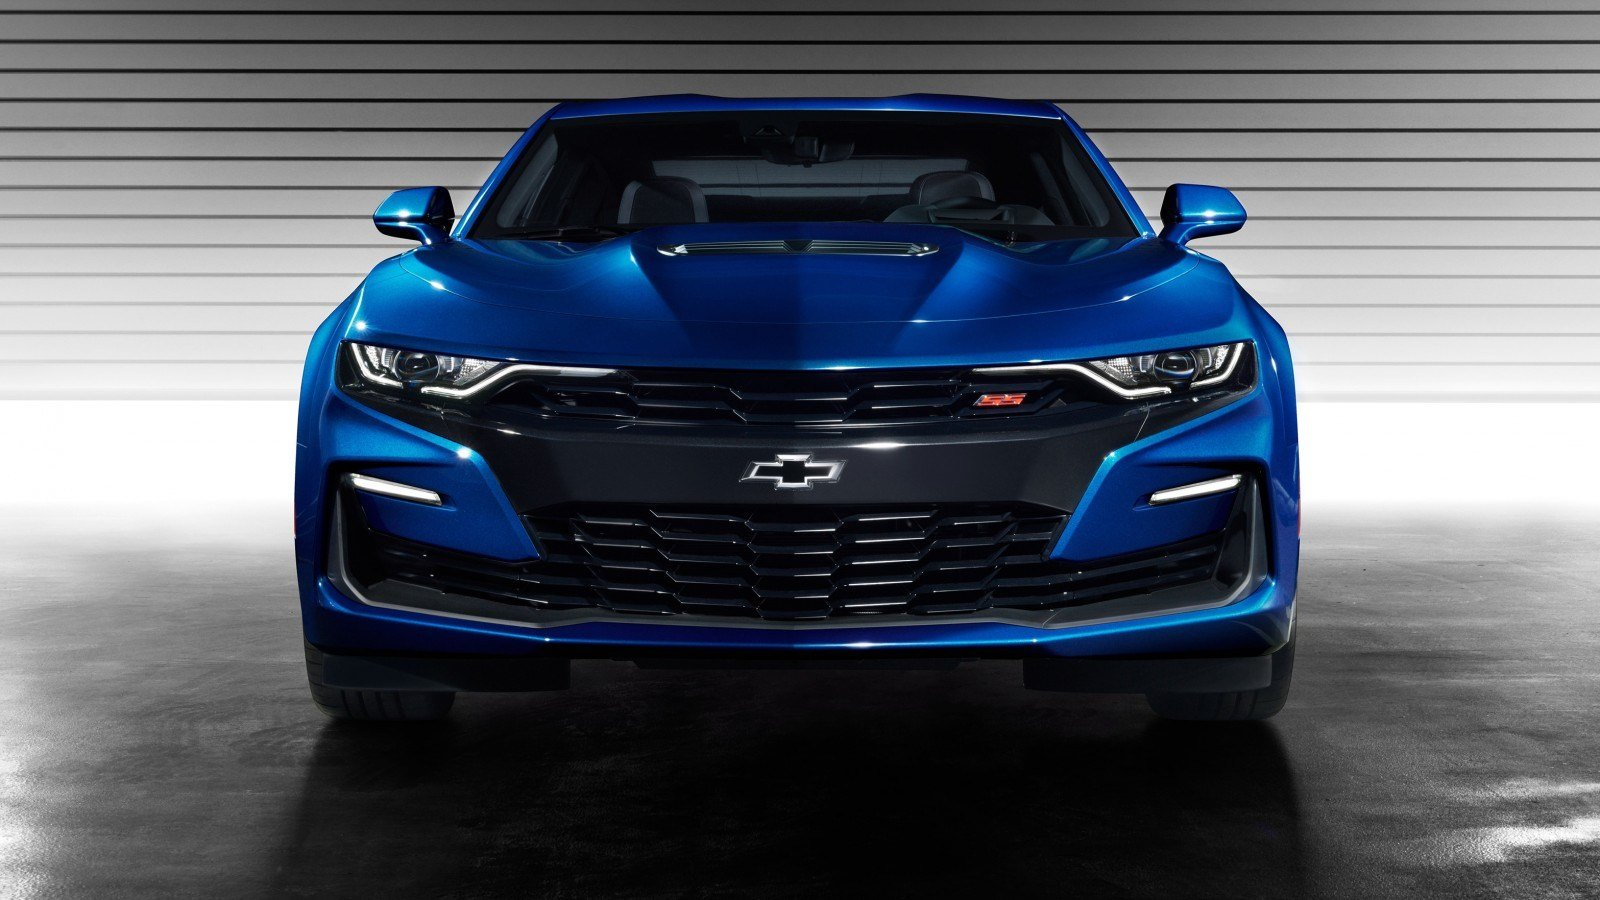 New 2019 Chevrolet Camaro Ss Wallpaper Hd Car Wallpapers On This Month